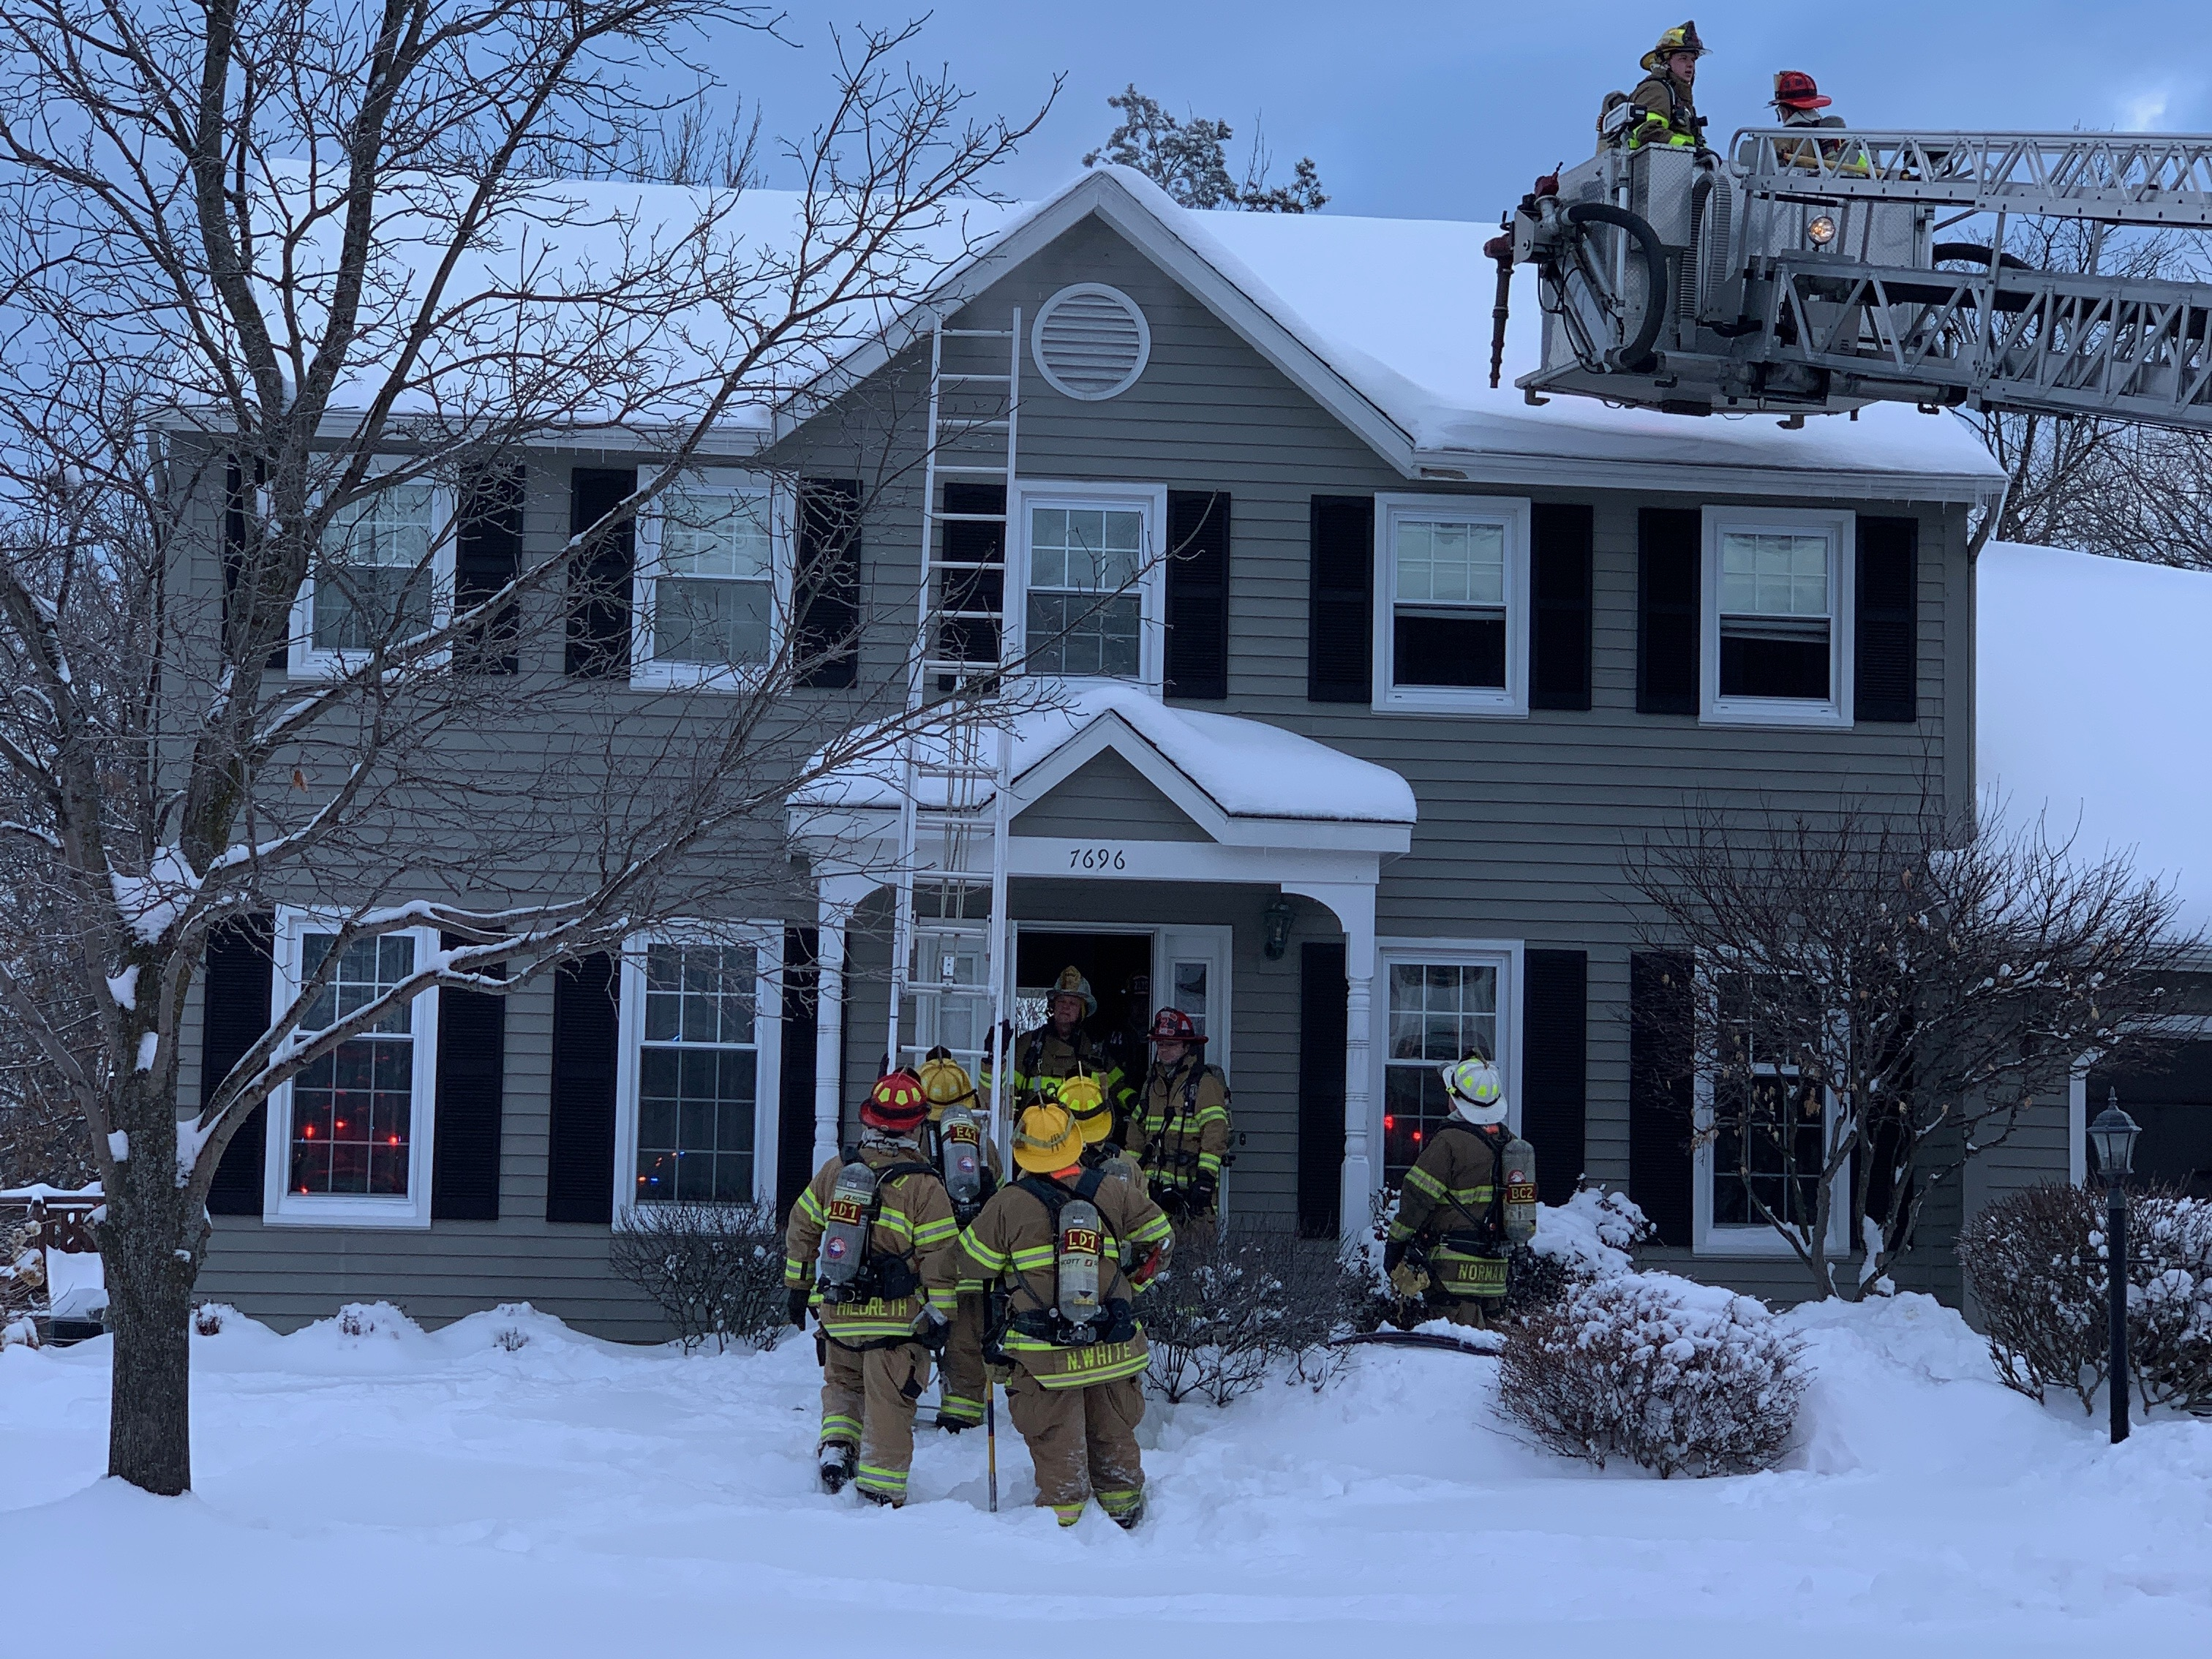 Family safely leaves home after Clay attic fire